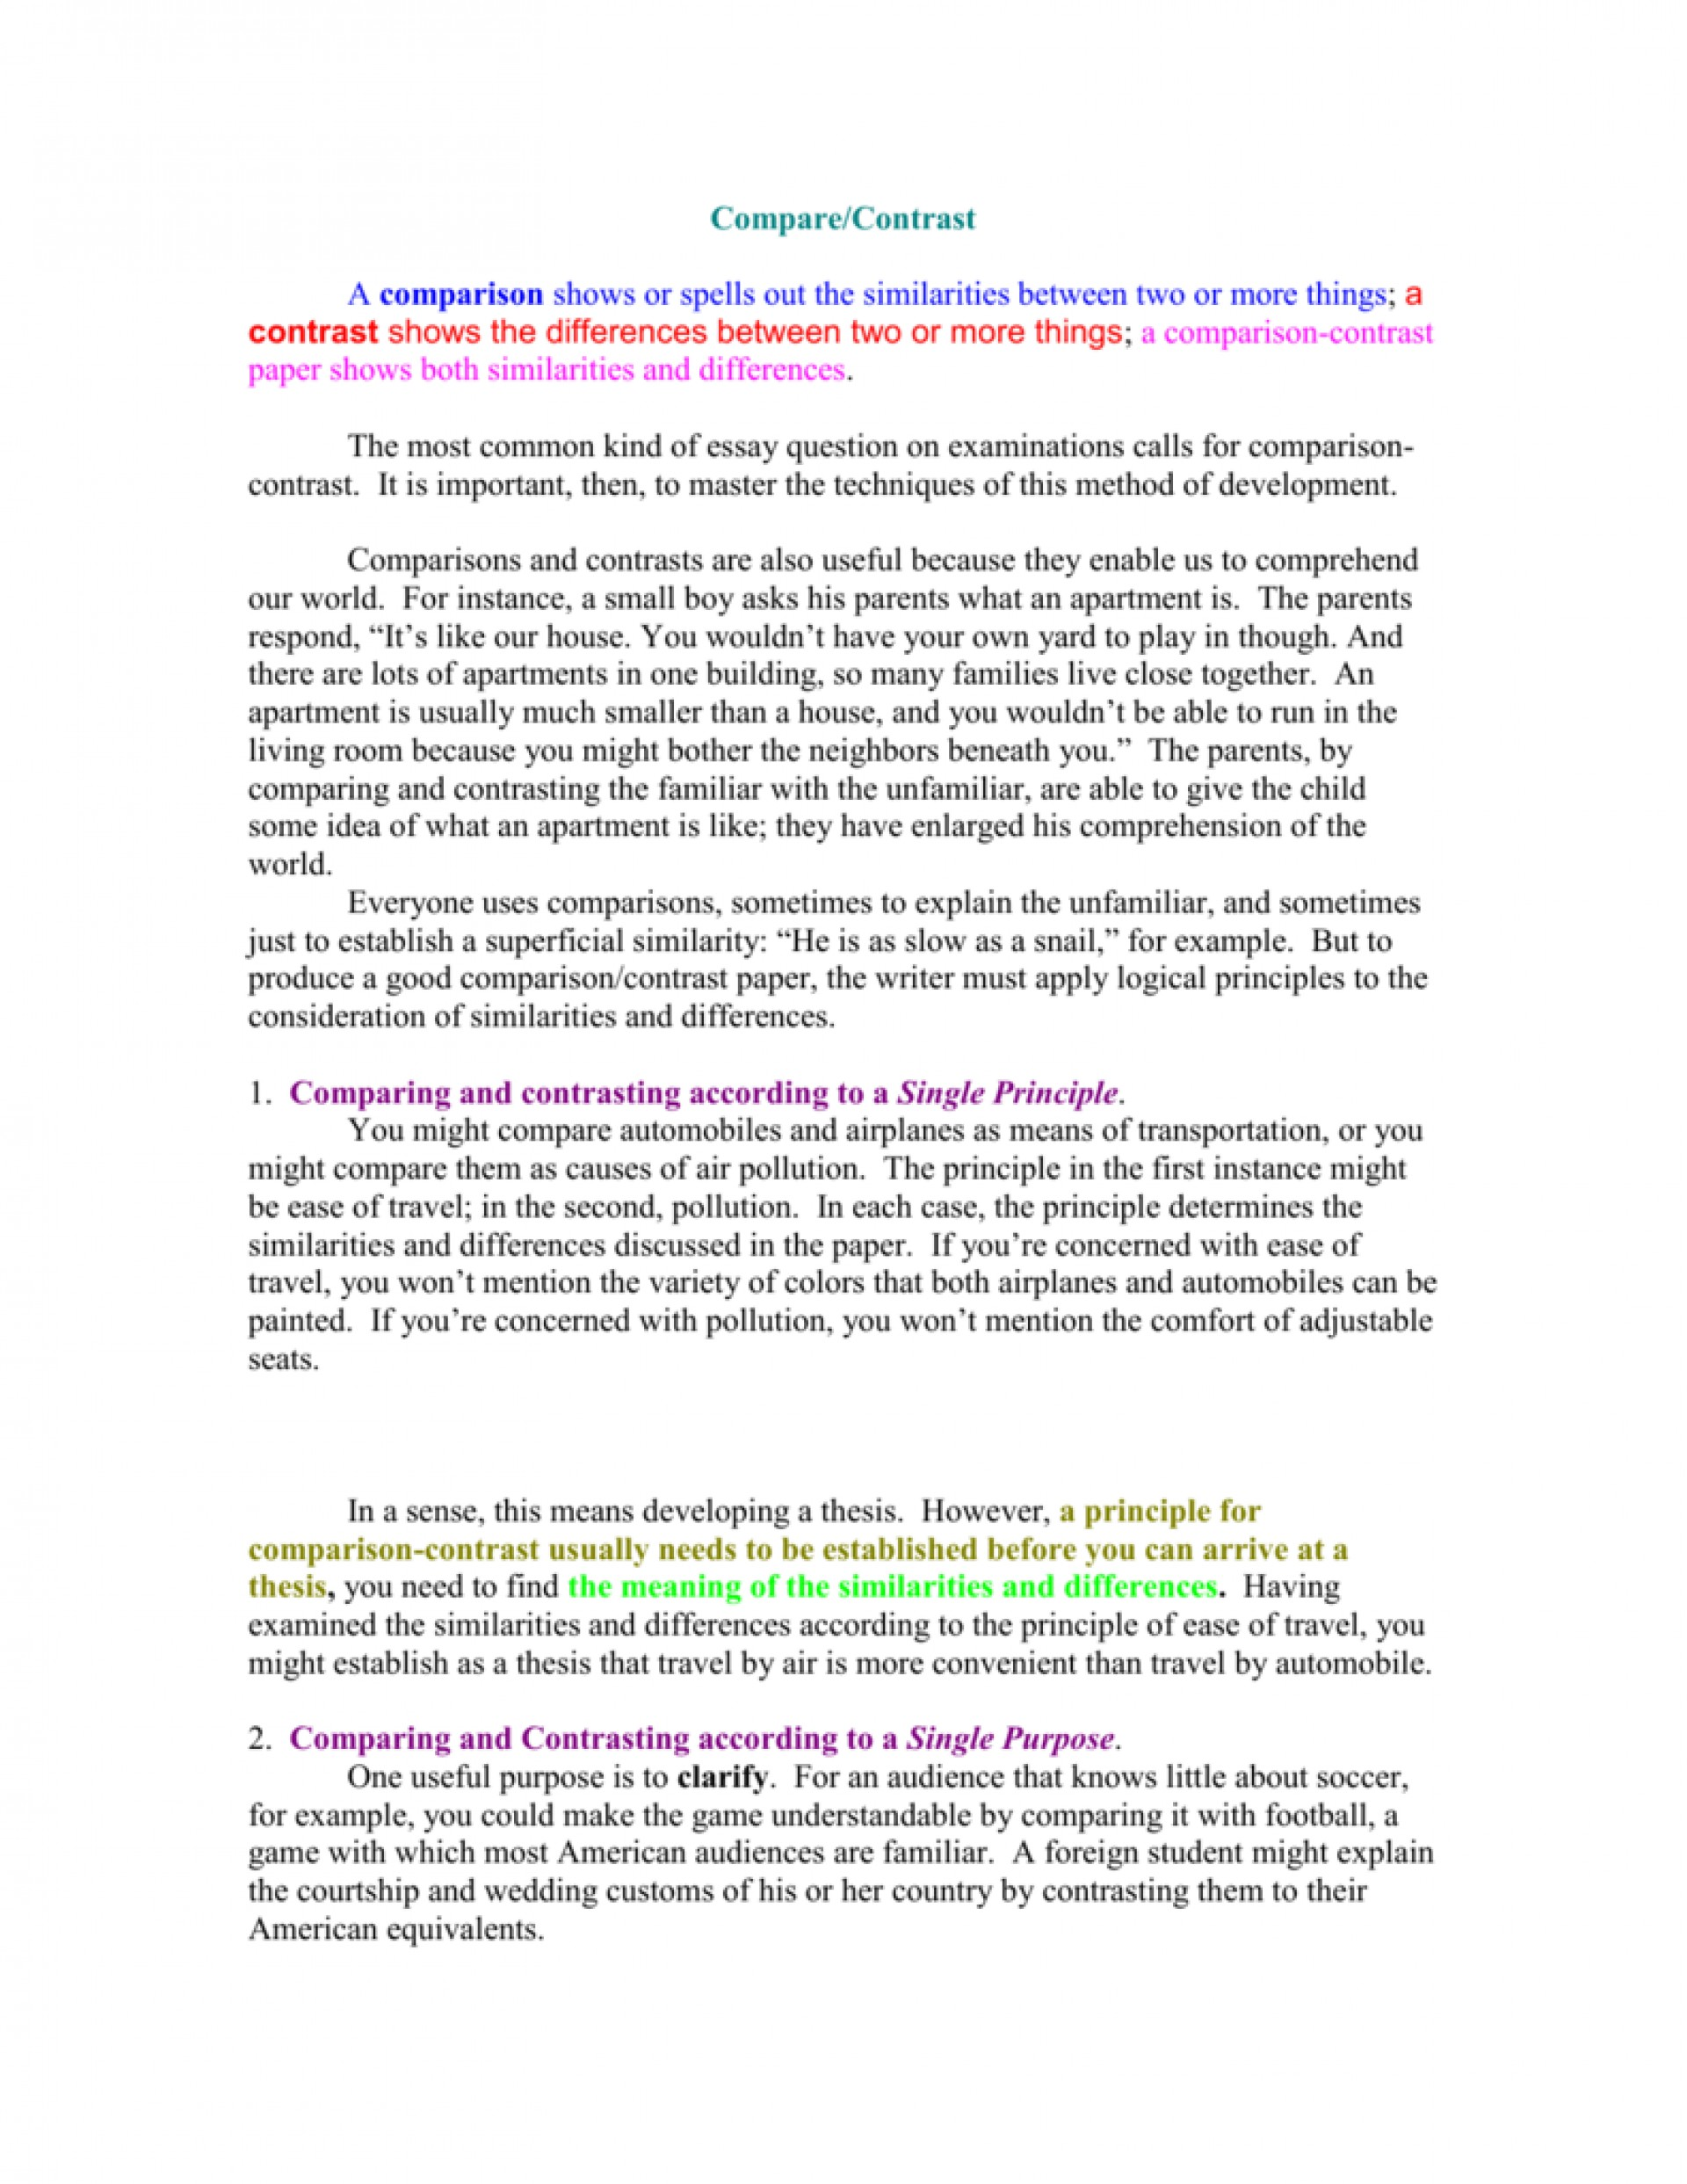 021 Soccer Vs Football Compare And Contrast Essay 007777977 2 Excellent 1920